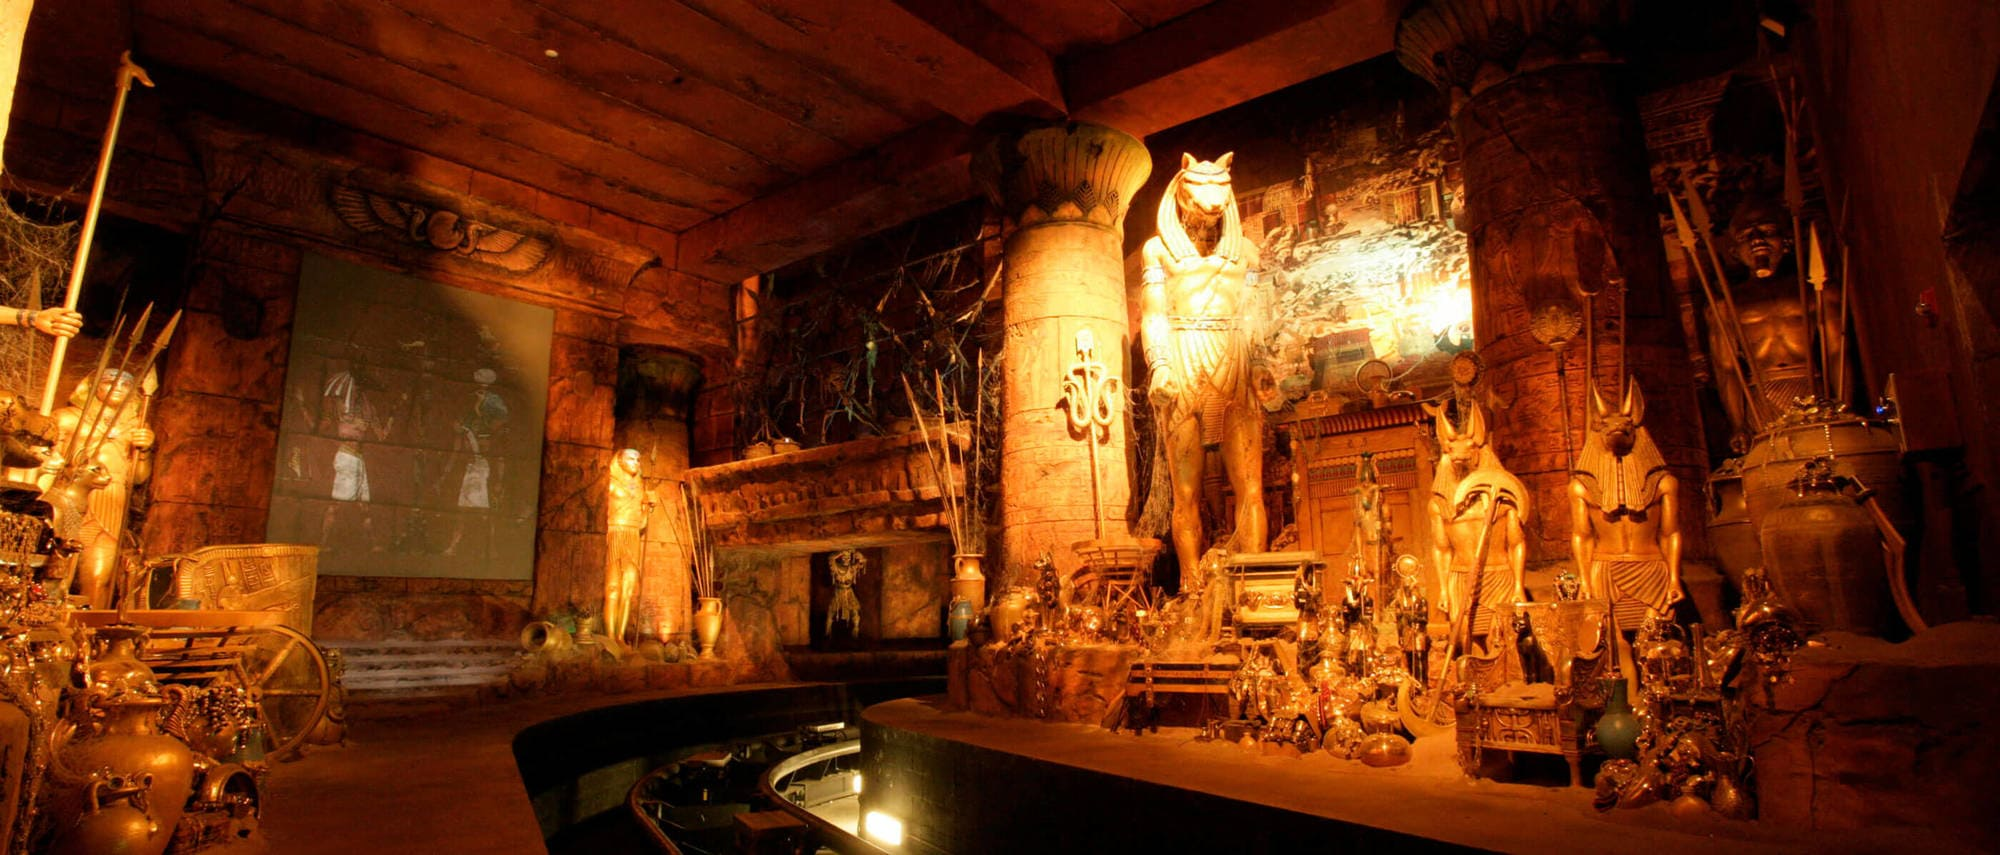 Make use of the Ride Swap option for scarier attractions like Revenge of the Mummy – The Ride